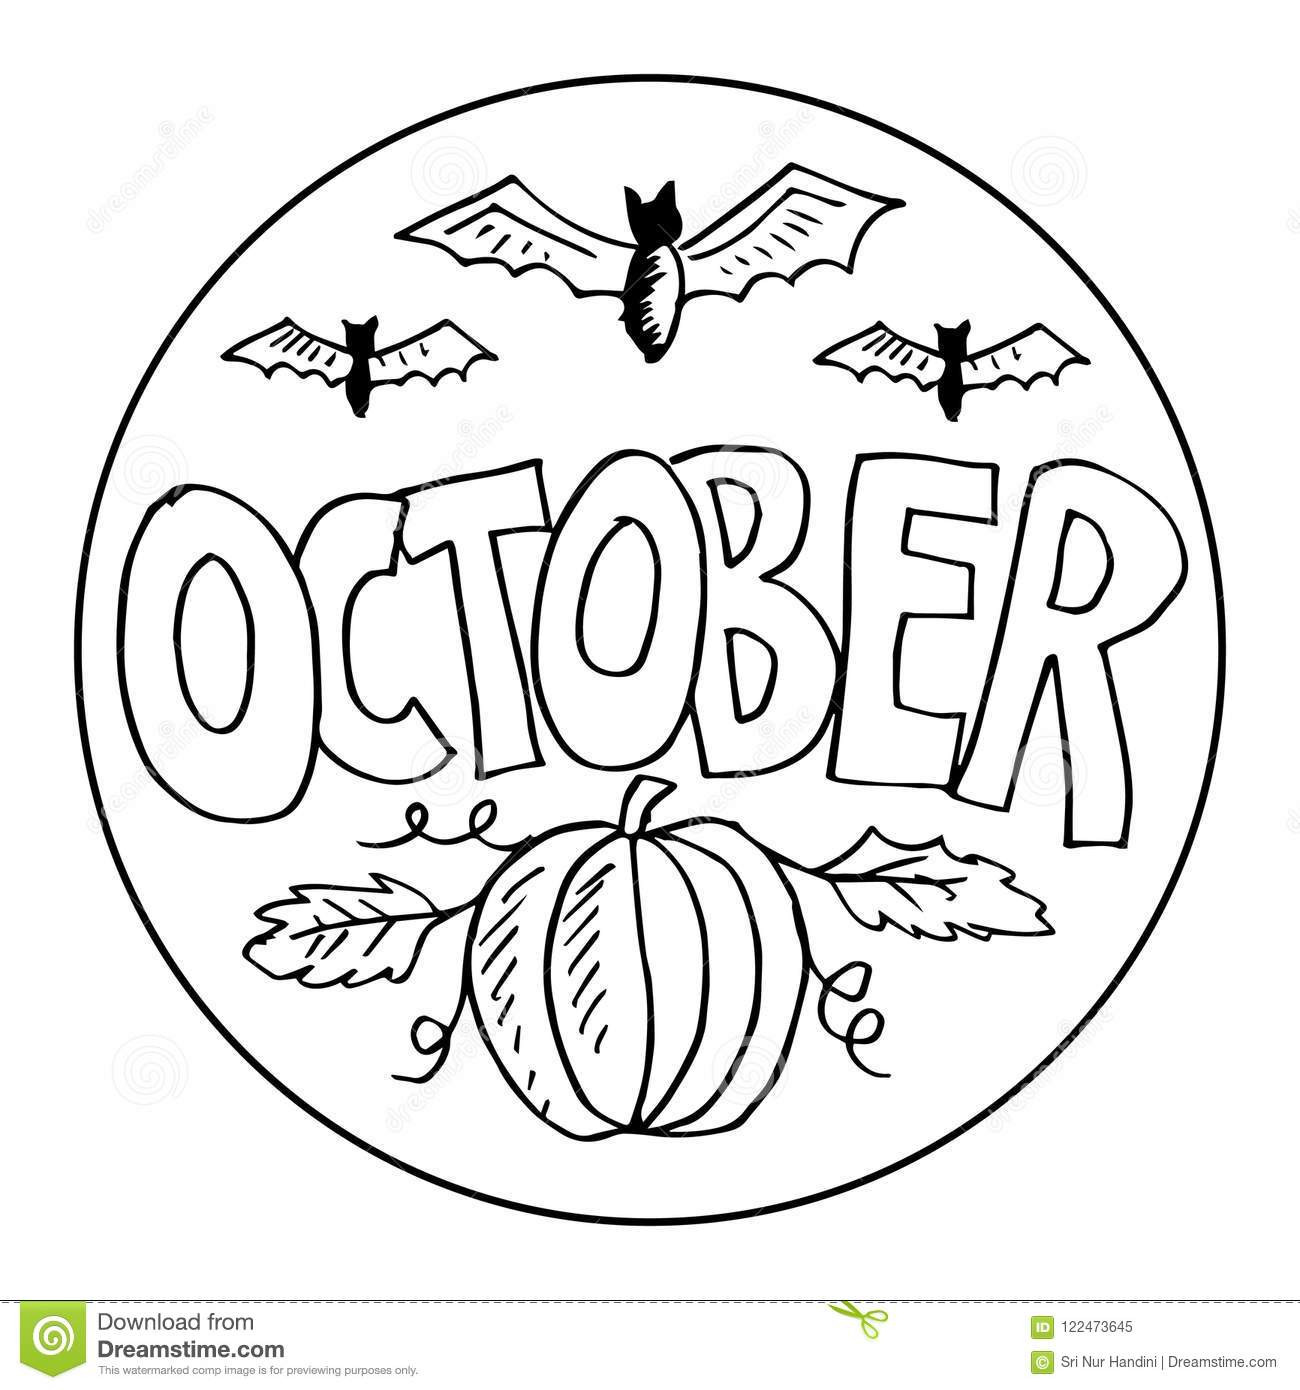 October Coloring Pages For Kids  October Coloring Pages For Kids Stock Vector